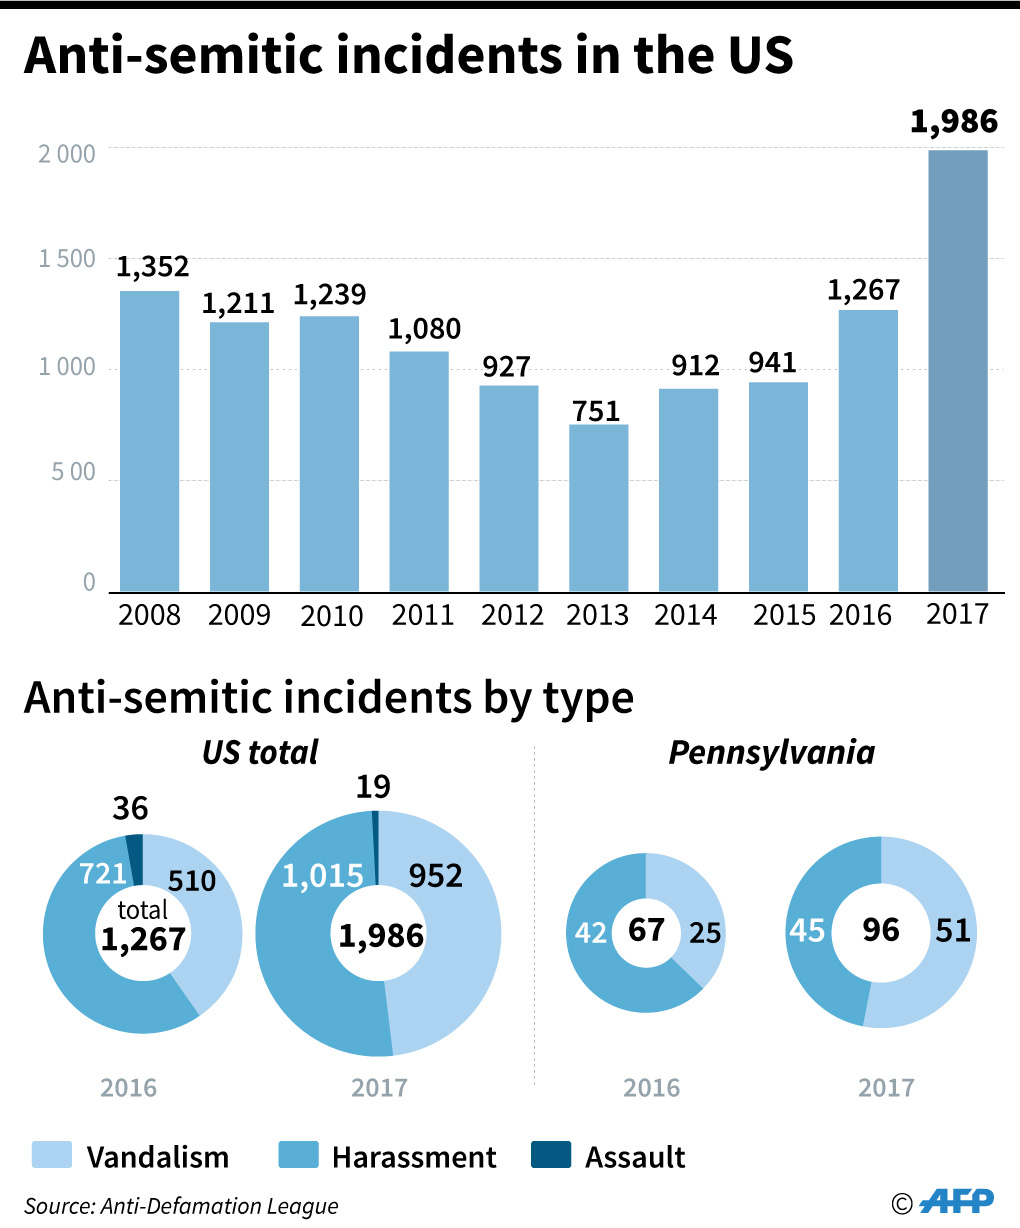 Chart showing anti-Semitic incidents in the US between 2008-2017.